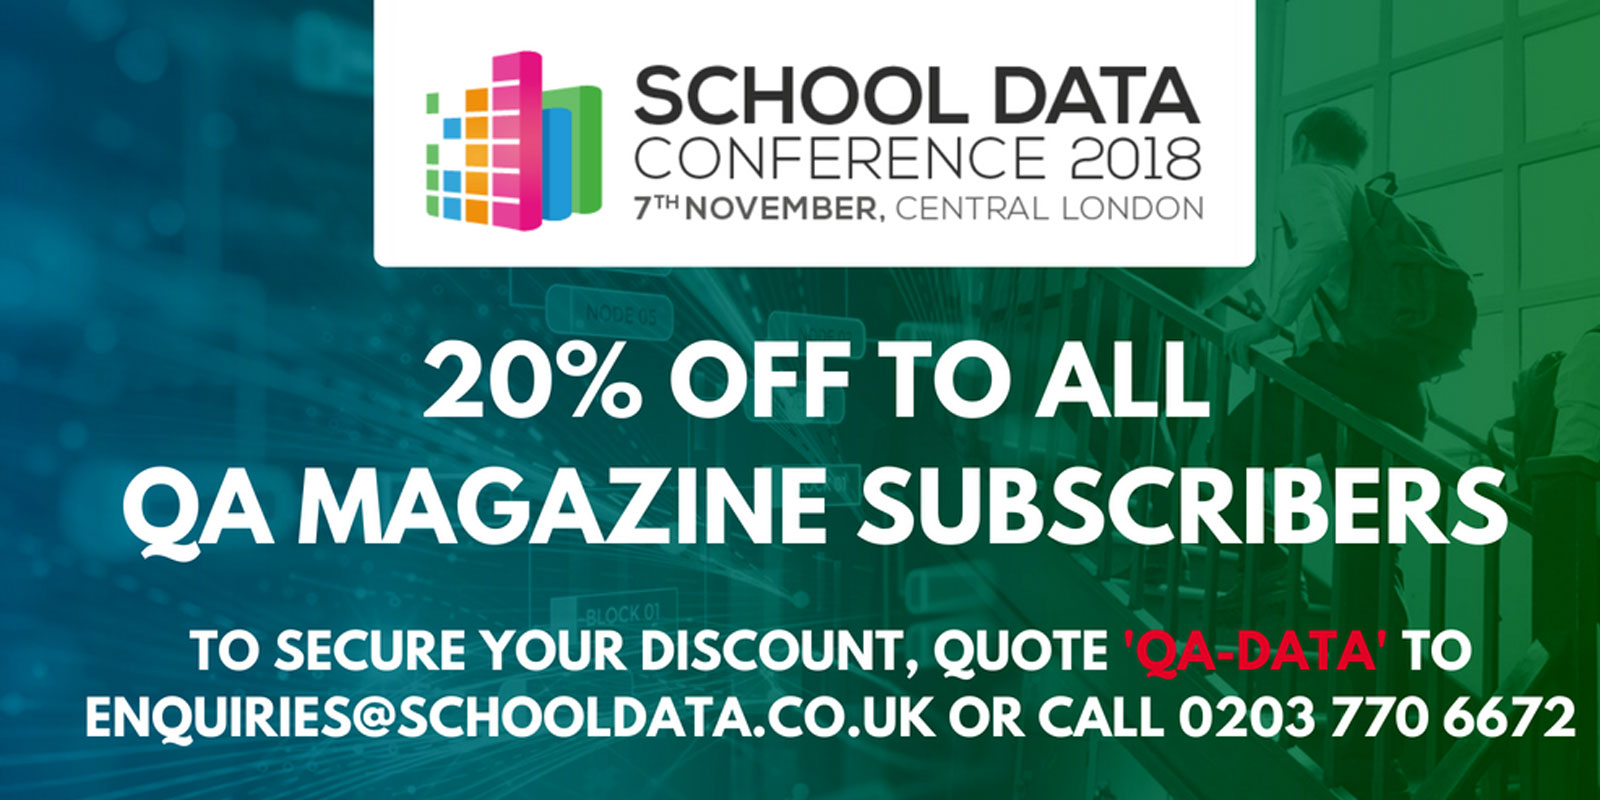 School Data Conference returns on the 7th of November to Central London!